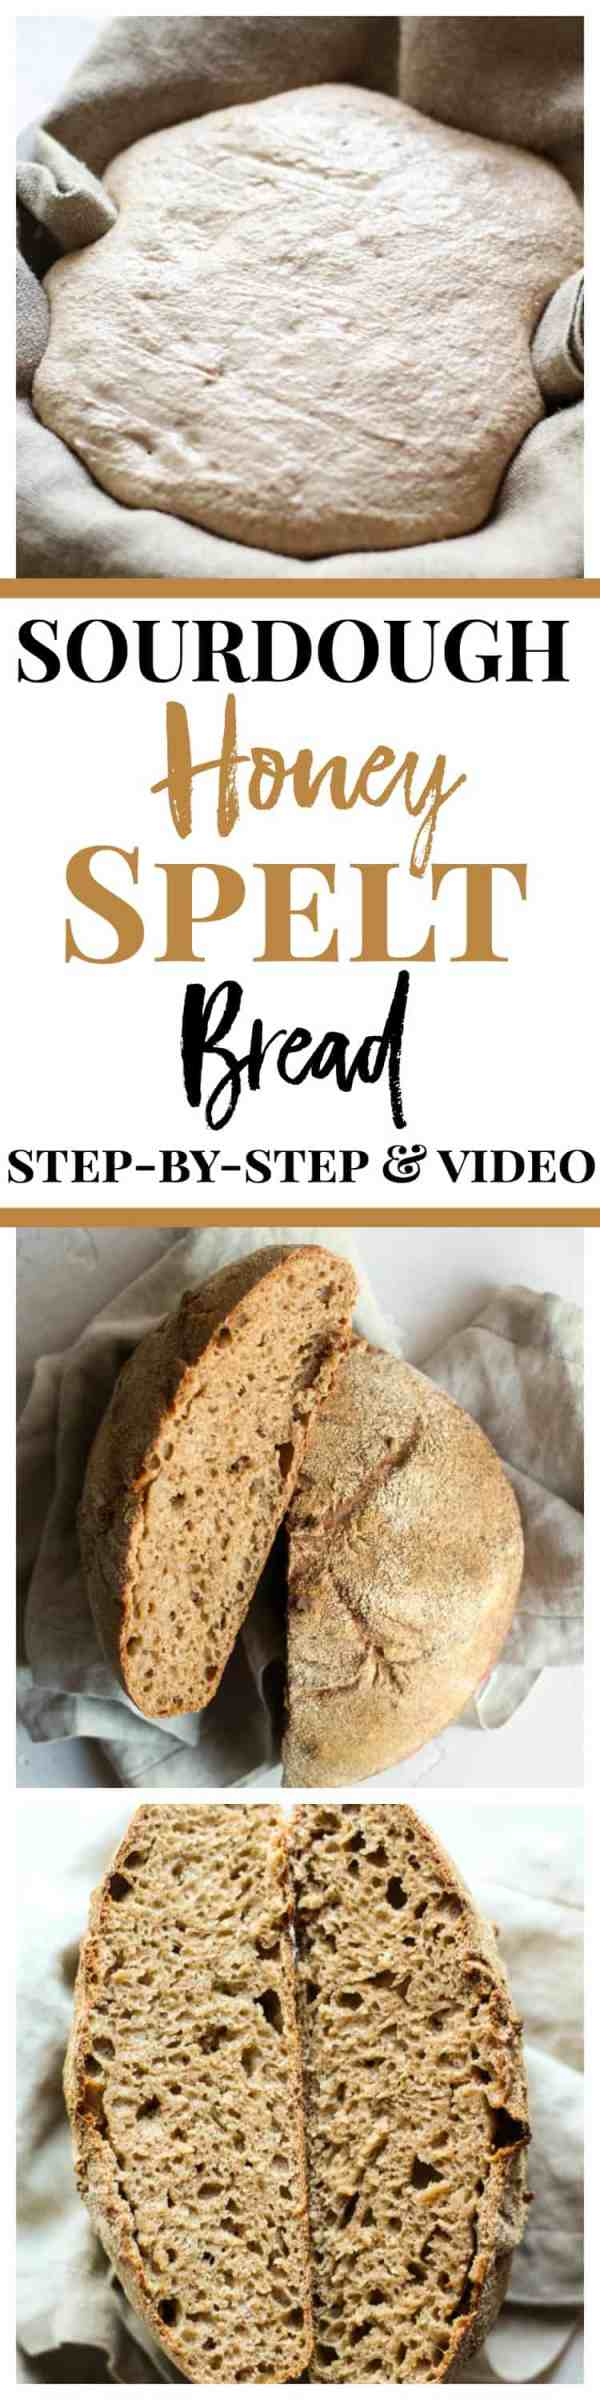 Sourdough Honey Spelt Bread recipe with step-by-step and a video!